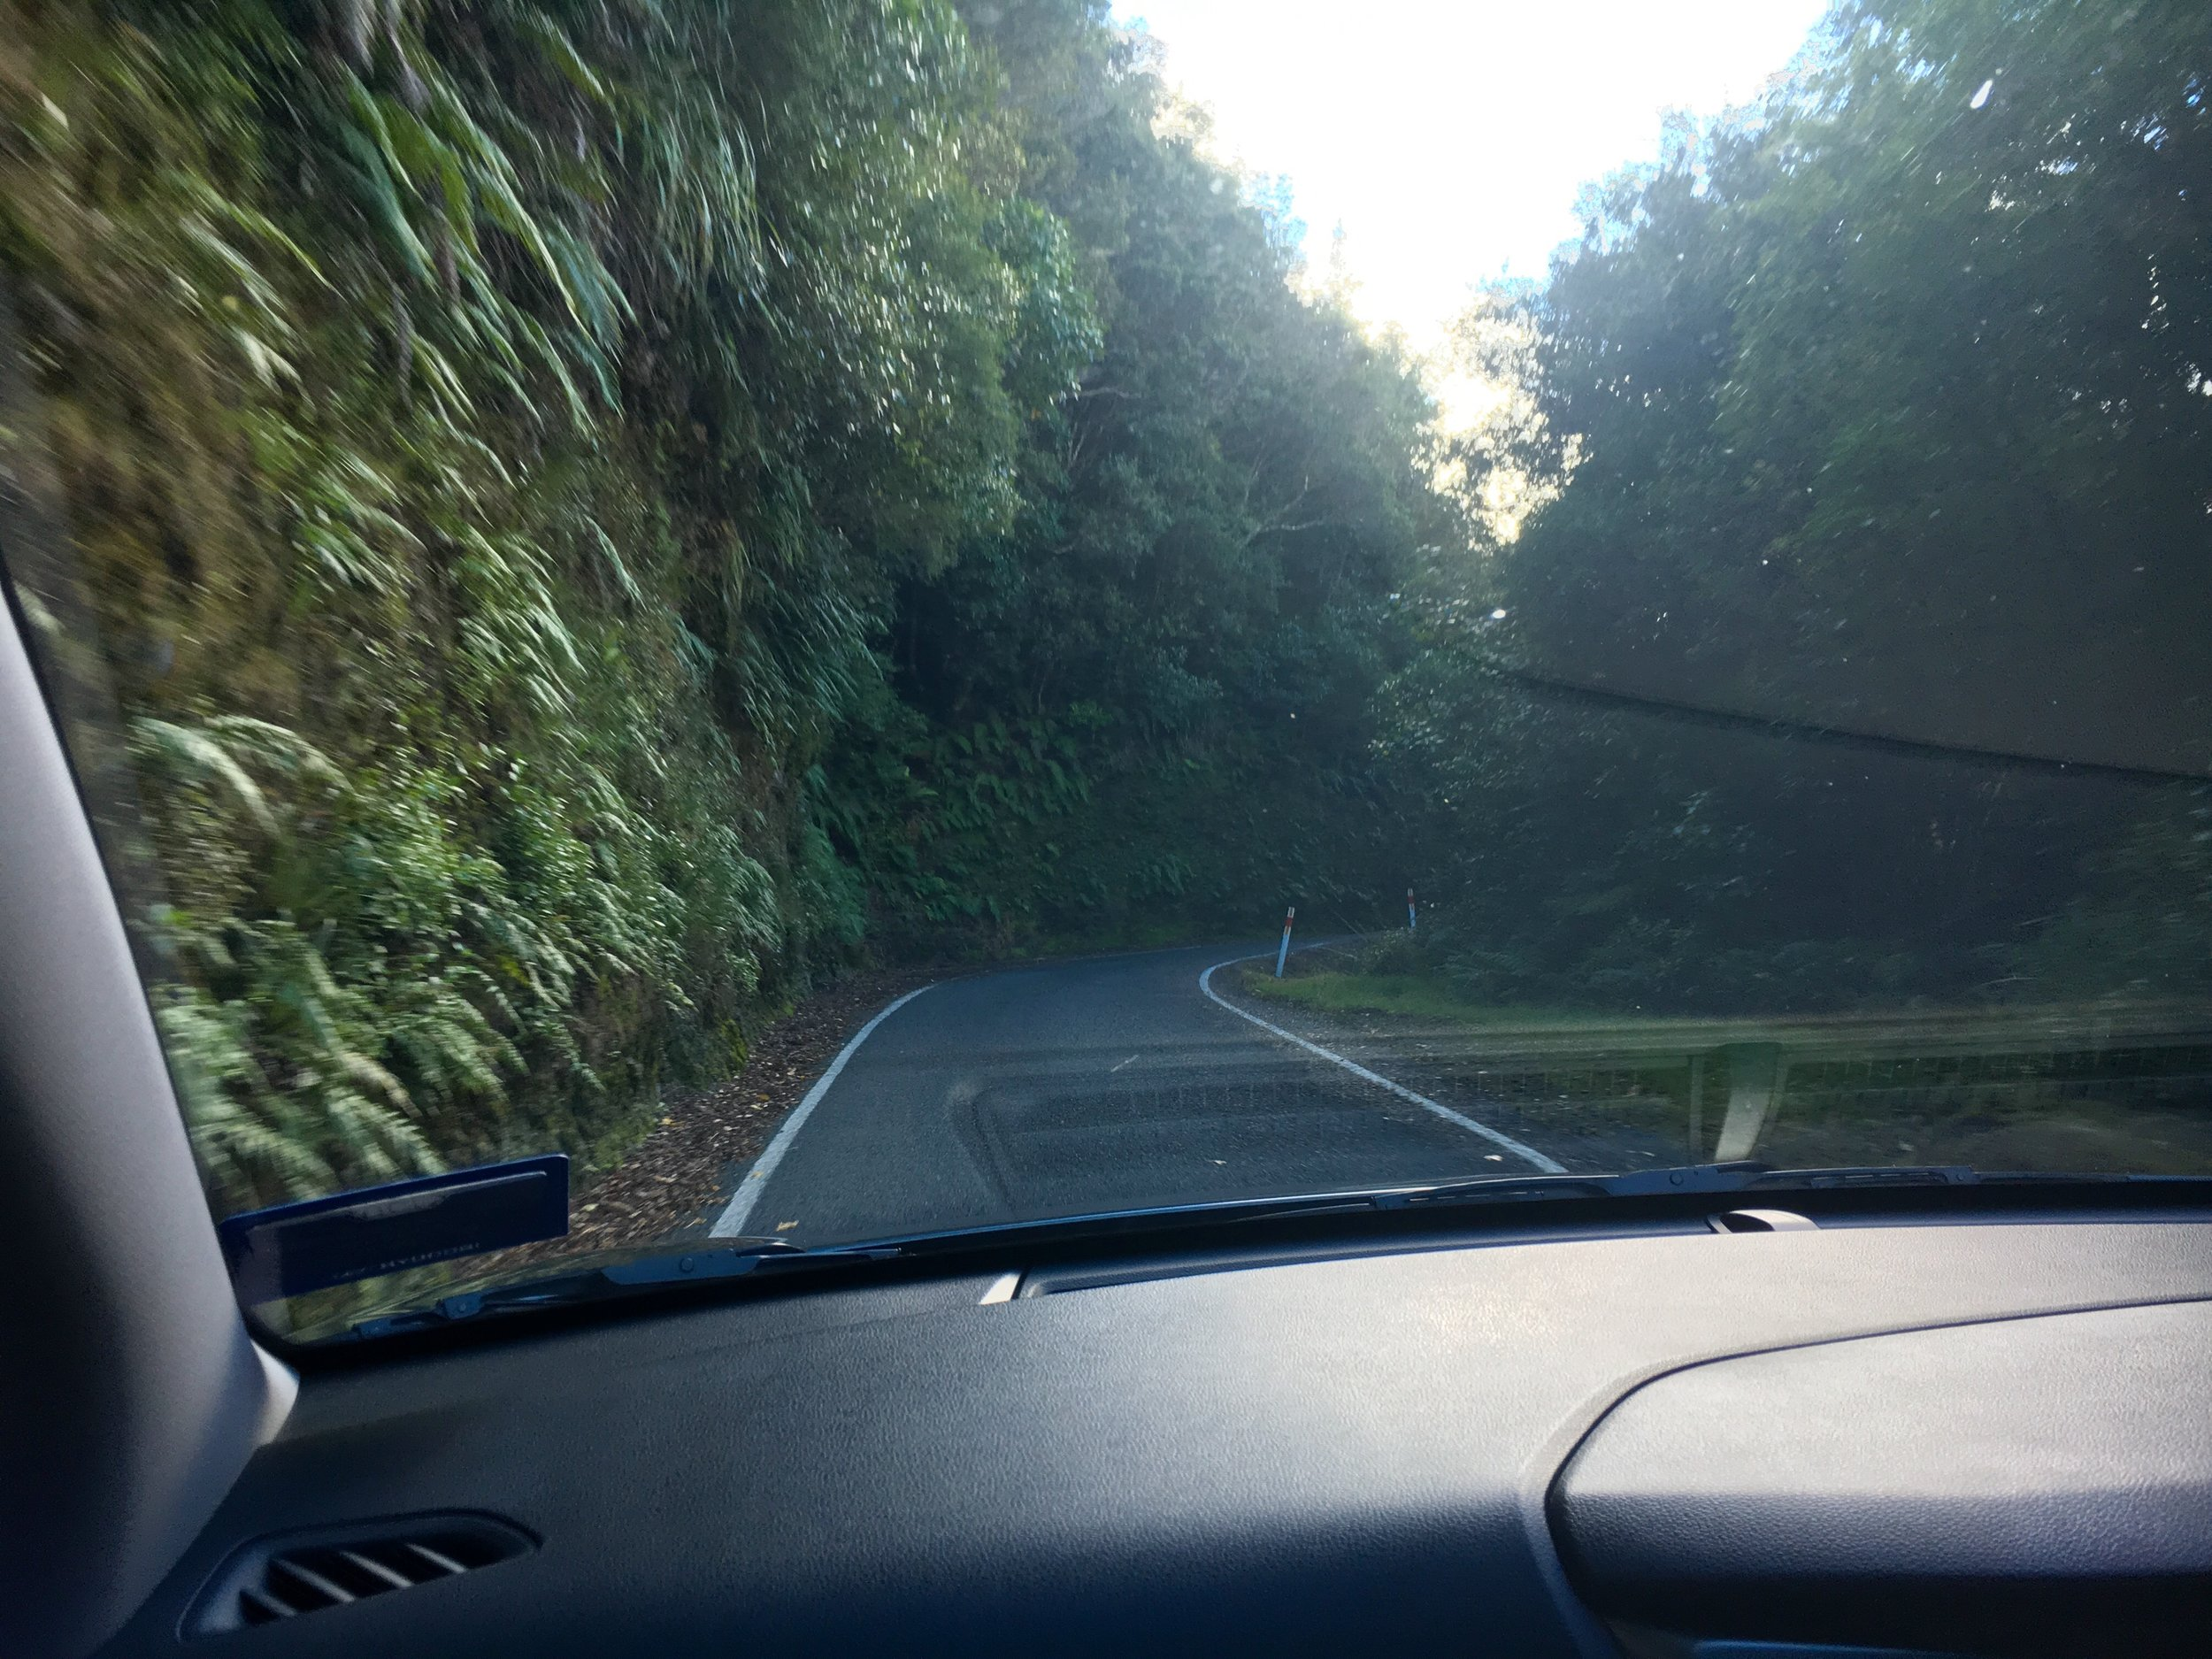 Two lane country shortcut. Nerve wracking.